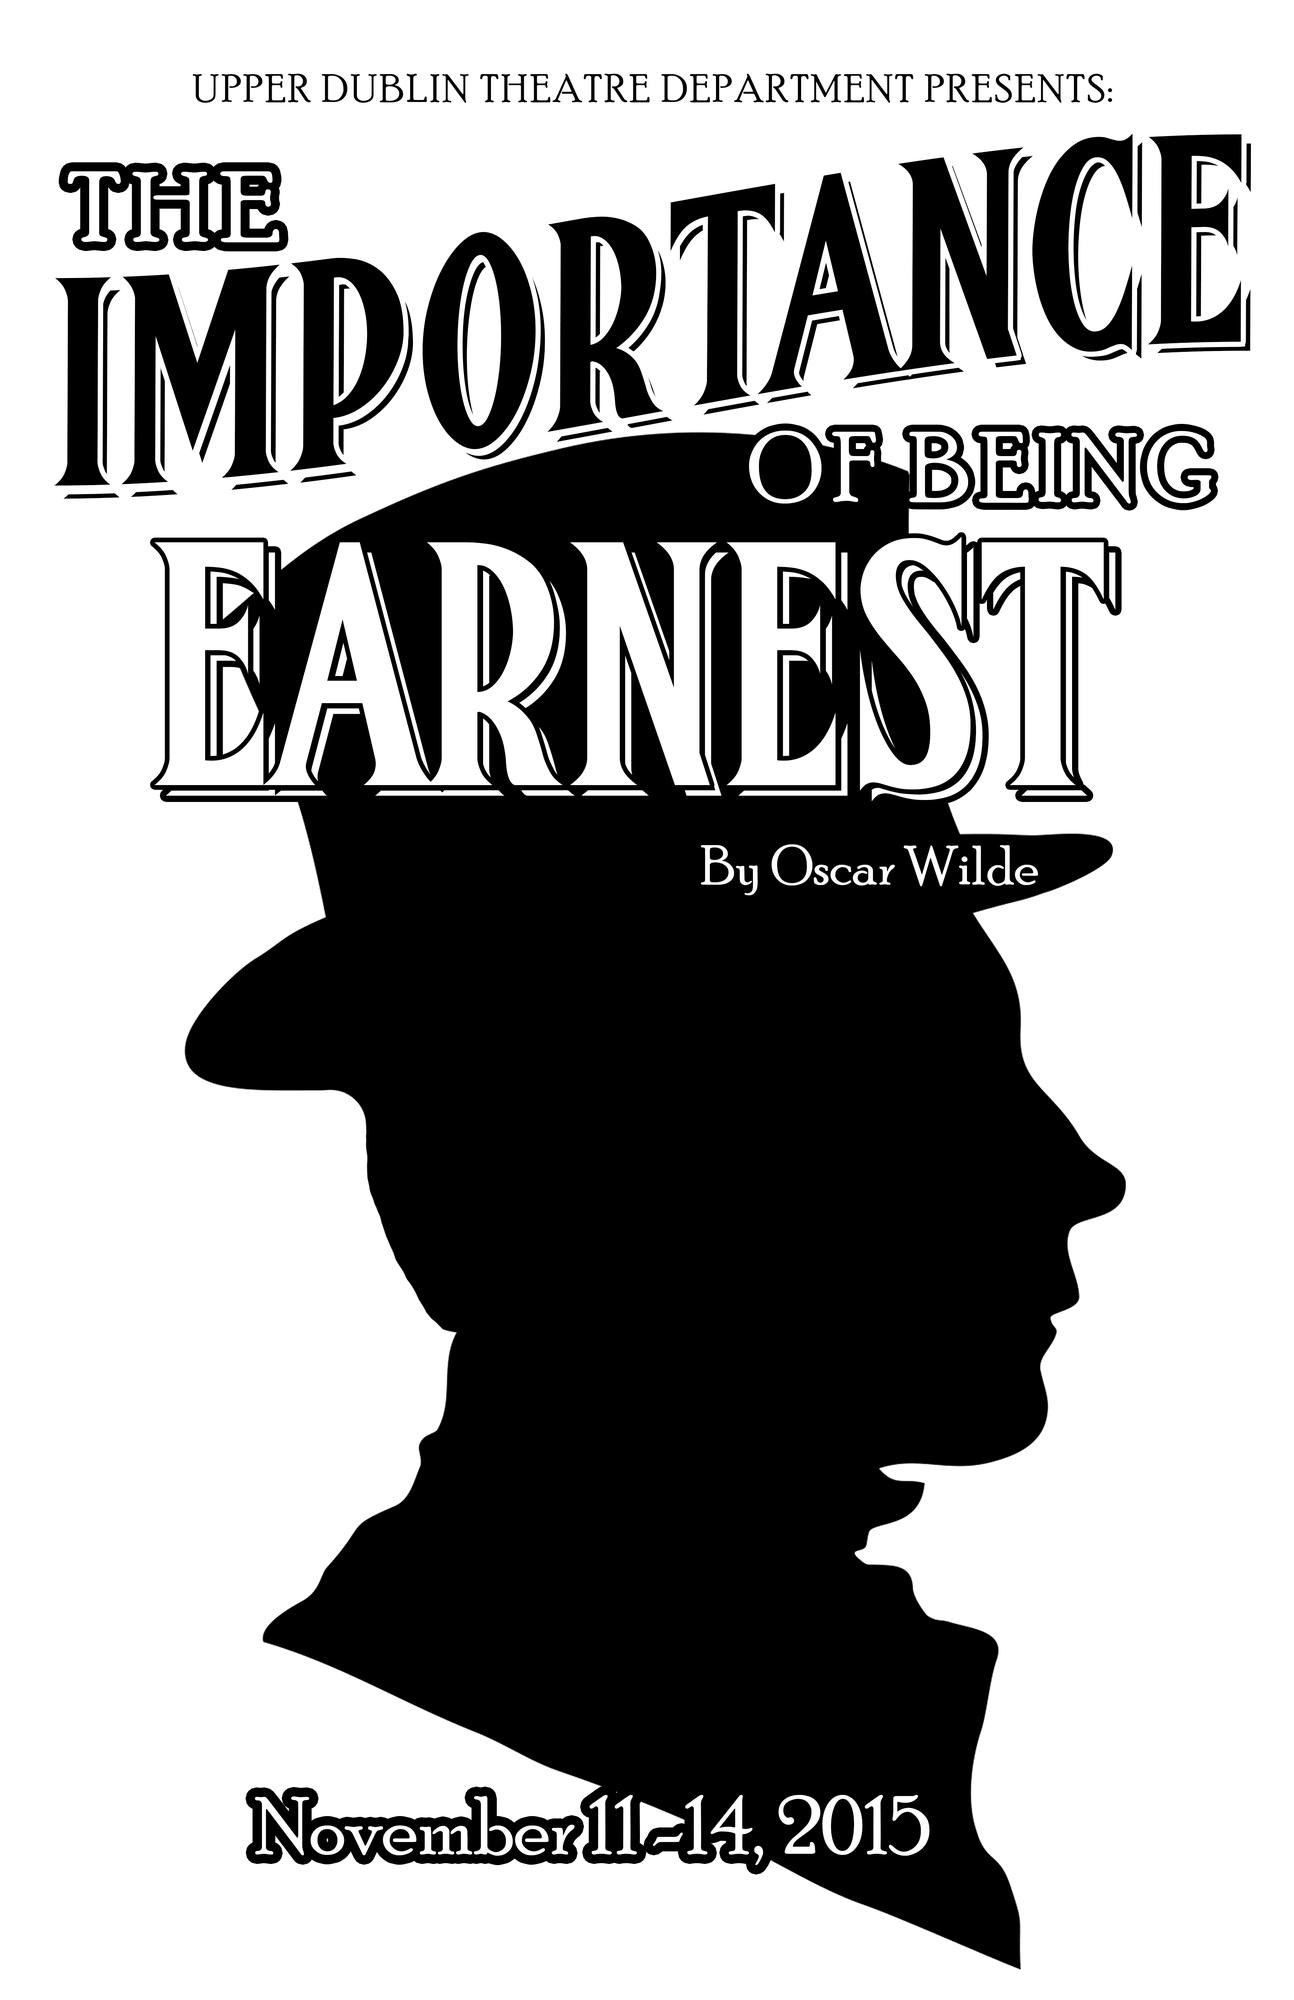 essays on the importance of being earnest by oscar wilde The importance of being earnest the importance of being earnest by oscar wilde in the importance of being earnest, oscar wilde uses word play in reference to the word вђњearnestвђќ throughout his play, wilde focuses on the matter of who is the most sincere or вђњearnestвђќ and who is actually the person whose name is ernest.